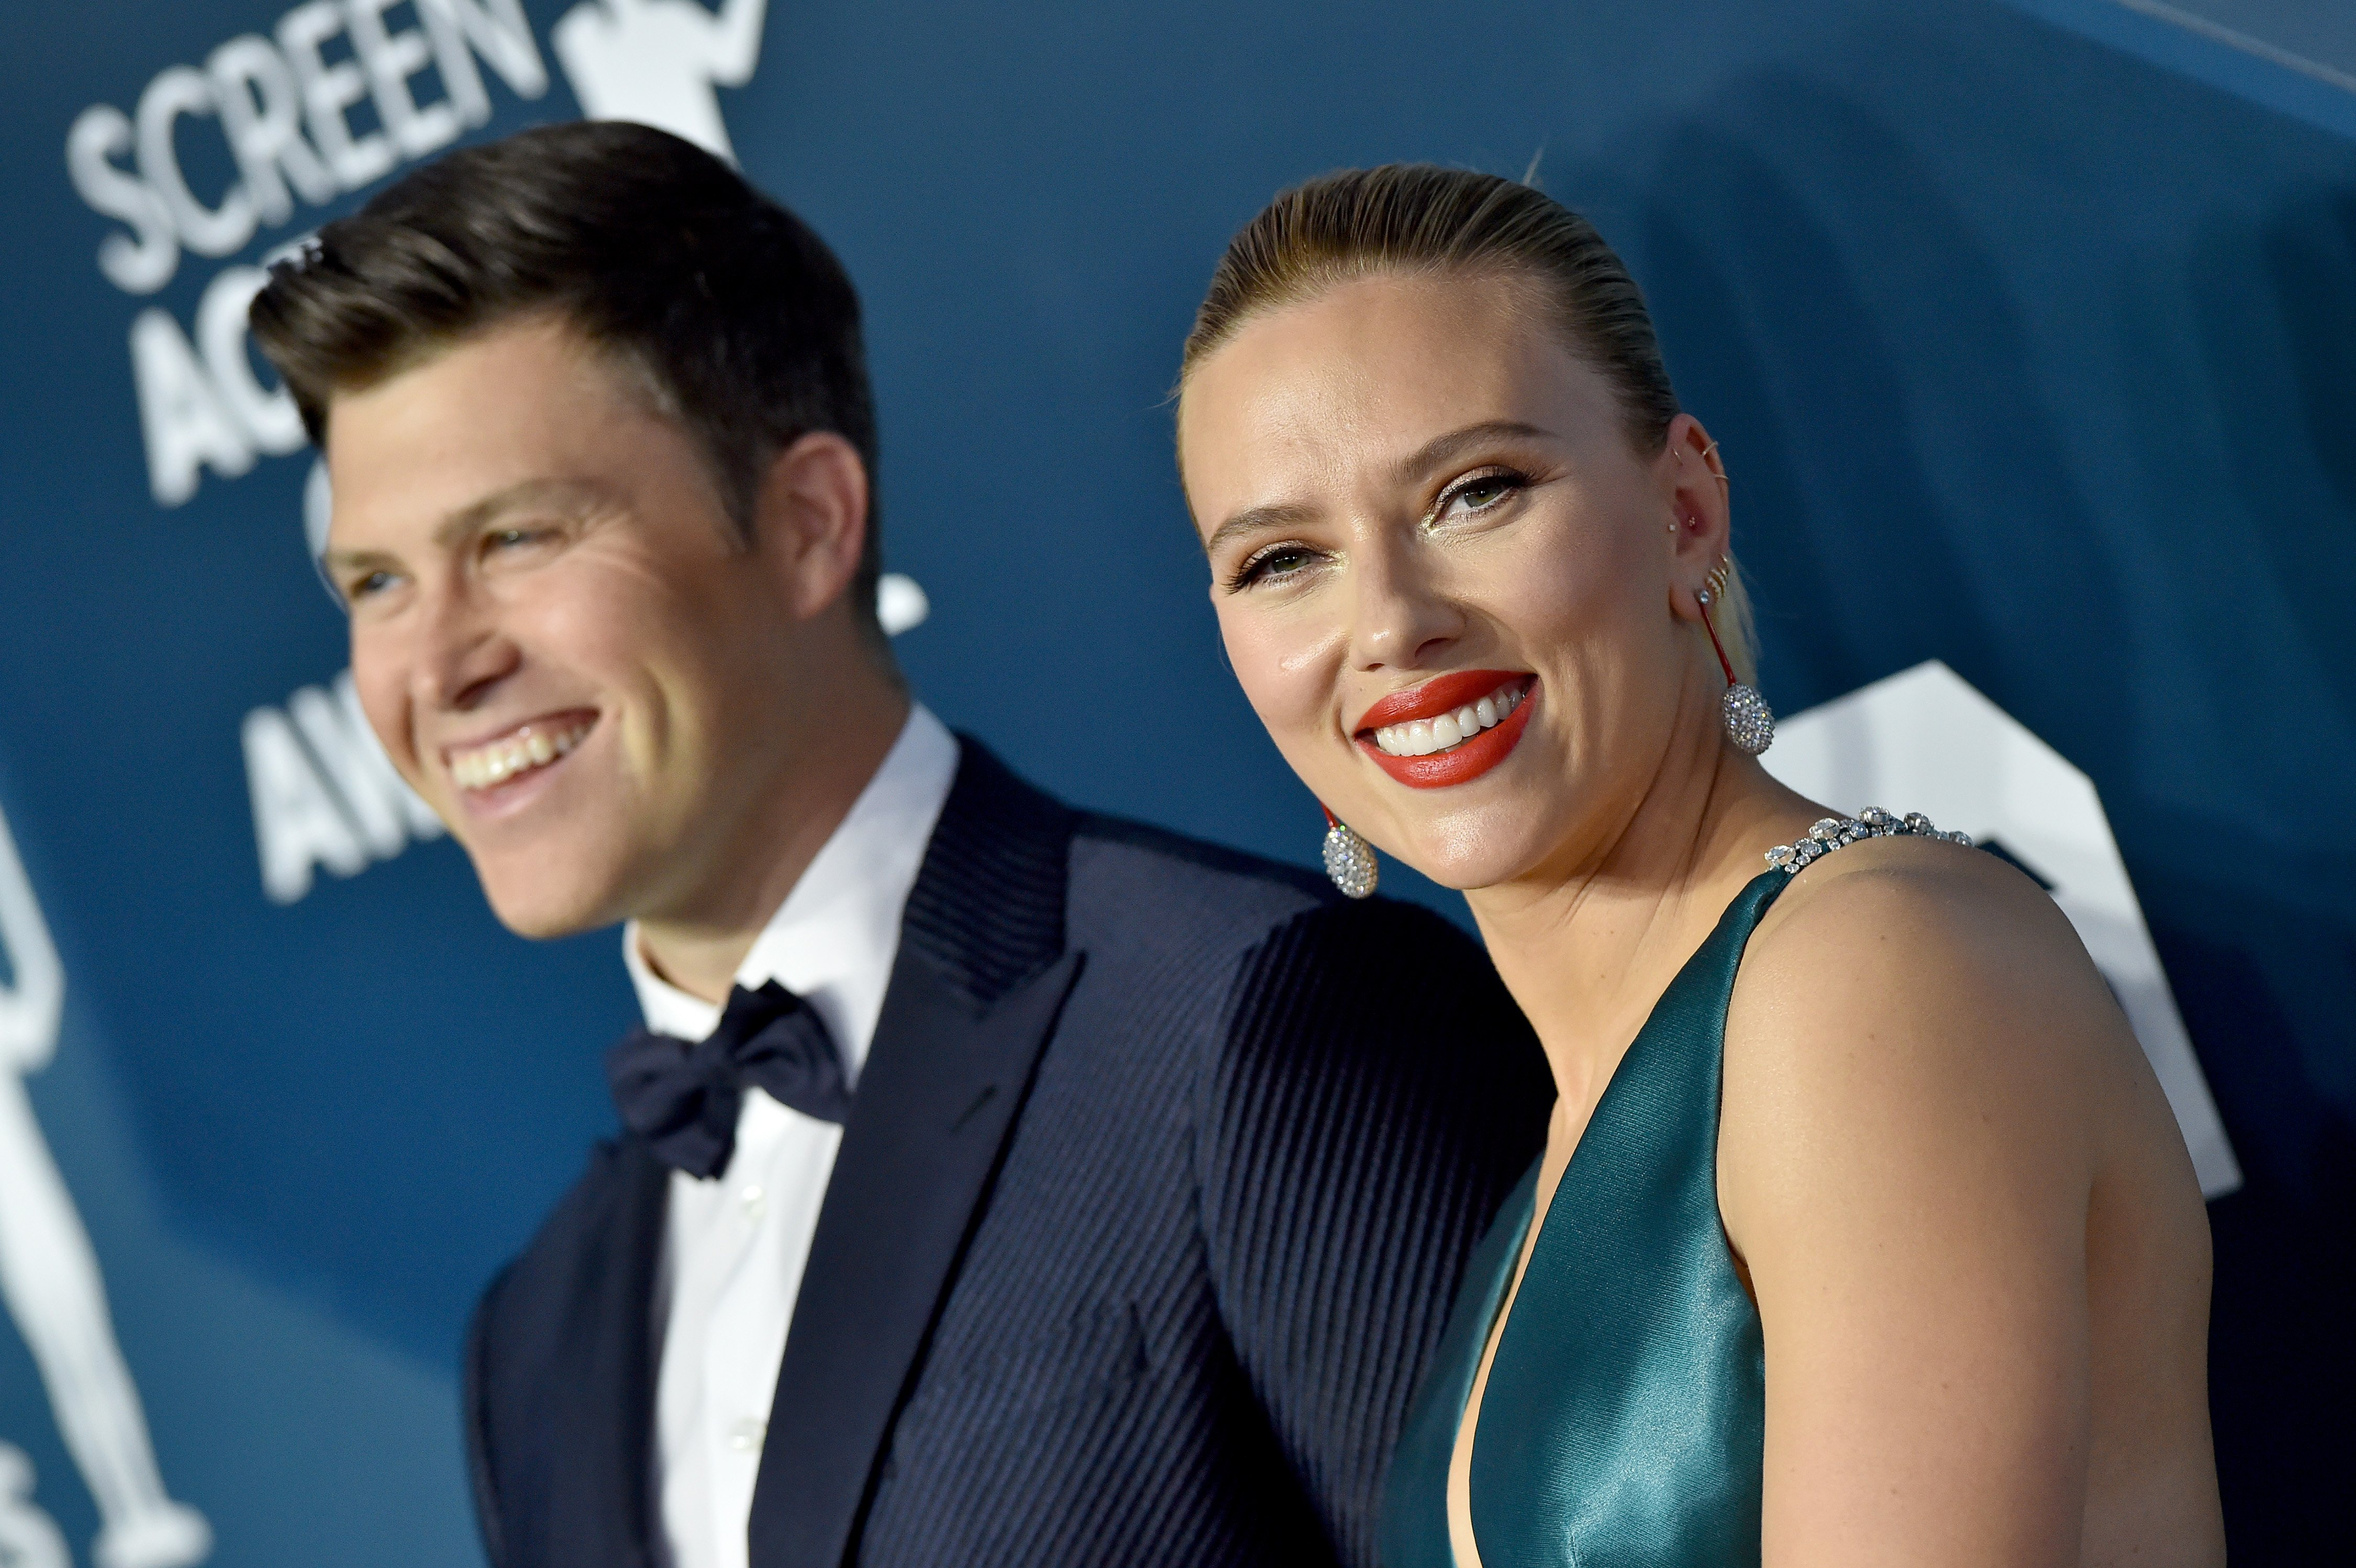 Comedian Colin Jost and Scarlett Johansson attend the 26th Annual Screen Actors Guild Awards at The Shrine Auditorium on January 19, 2020 in Los Angeles, California | Photo: Getty Images